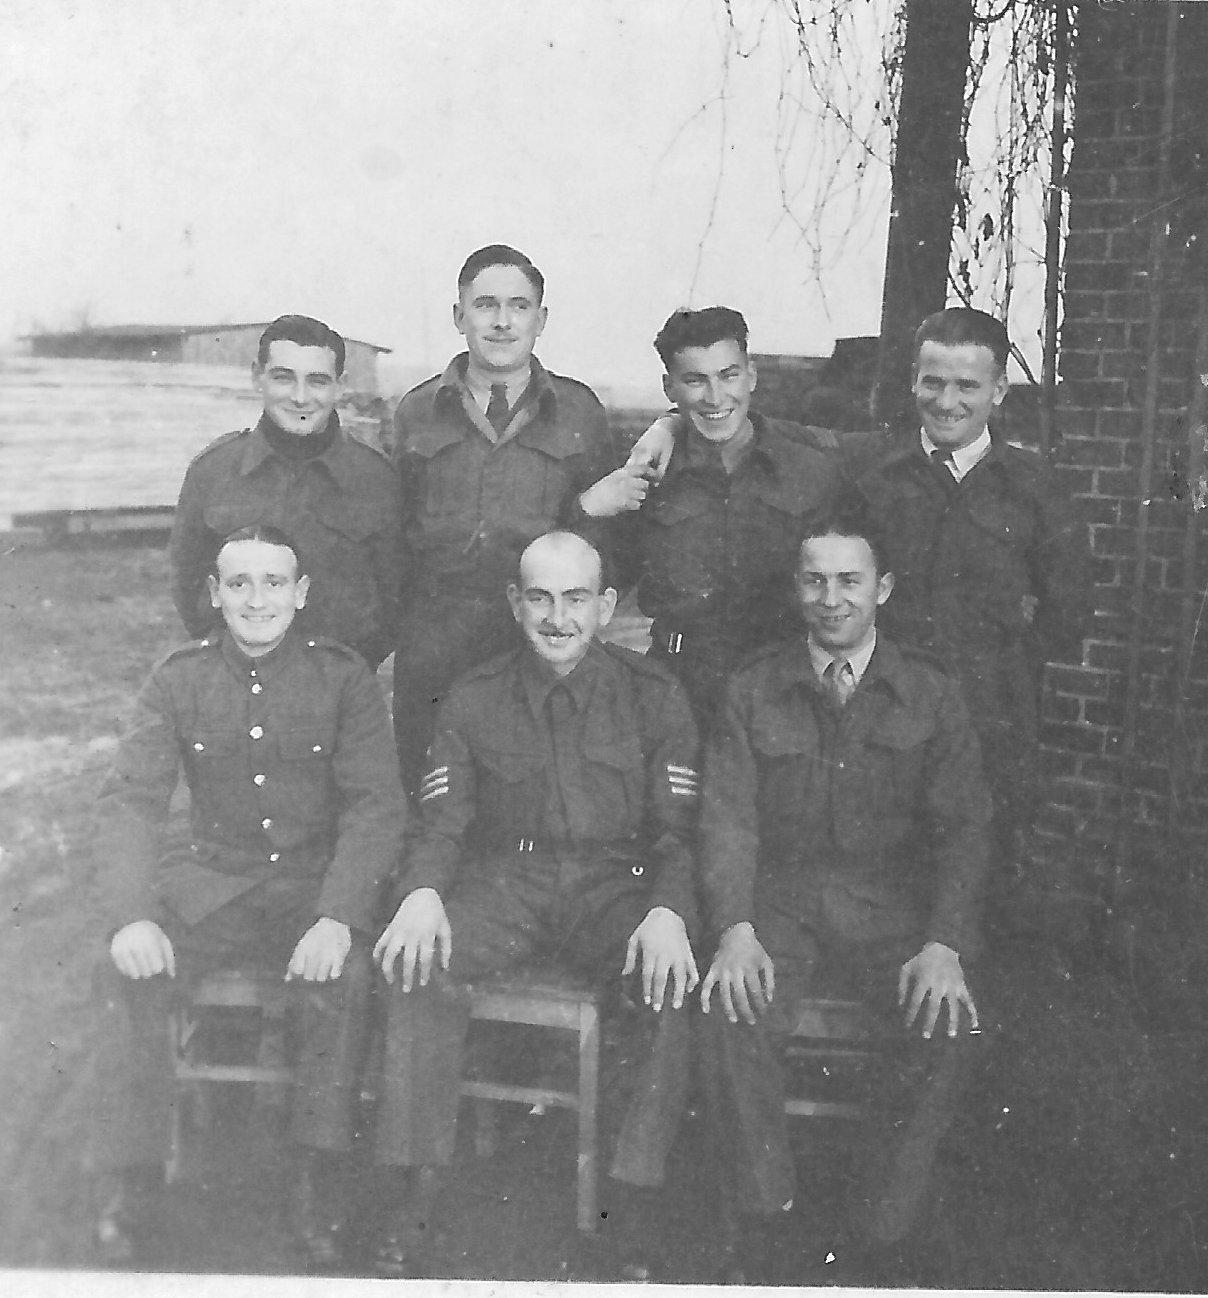 Dec 1942 Stalag VIII B Photo of Hubert Brooks, John Duncan and crew.